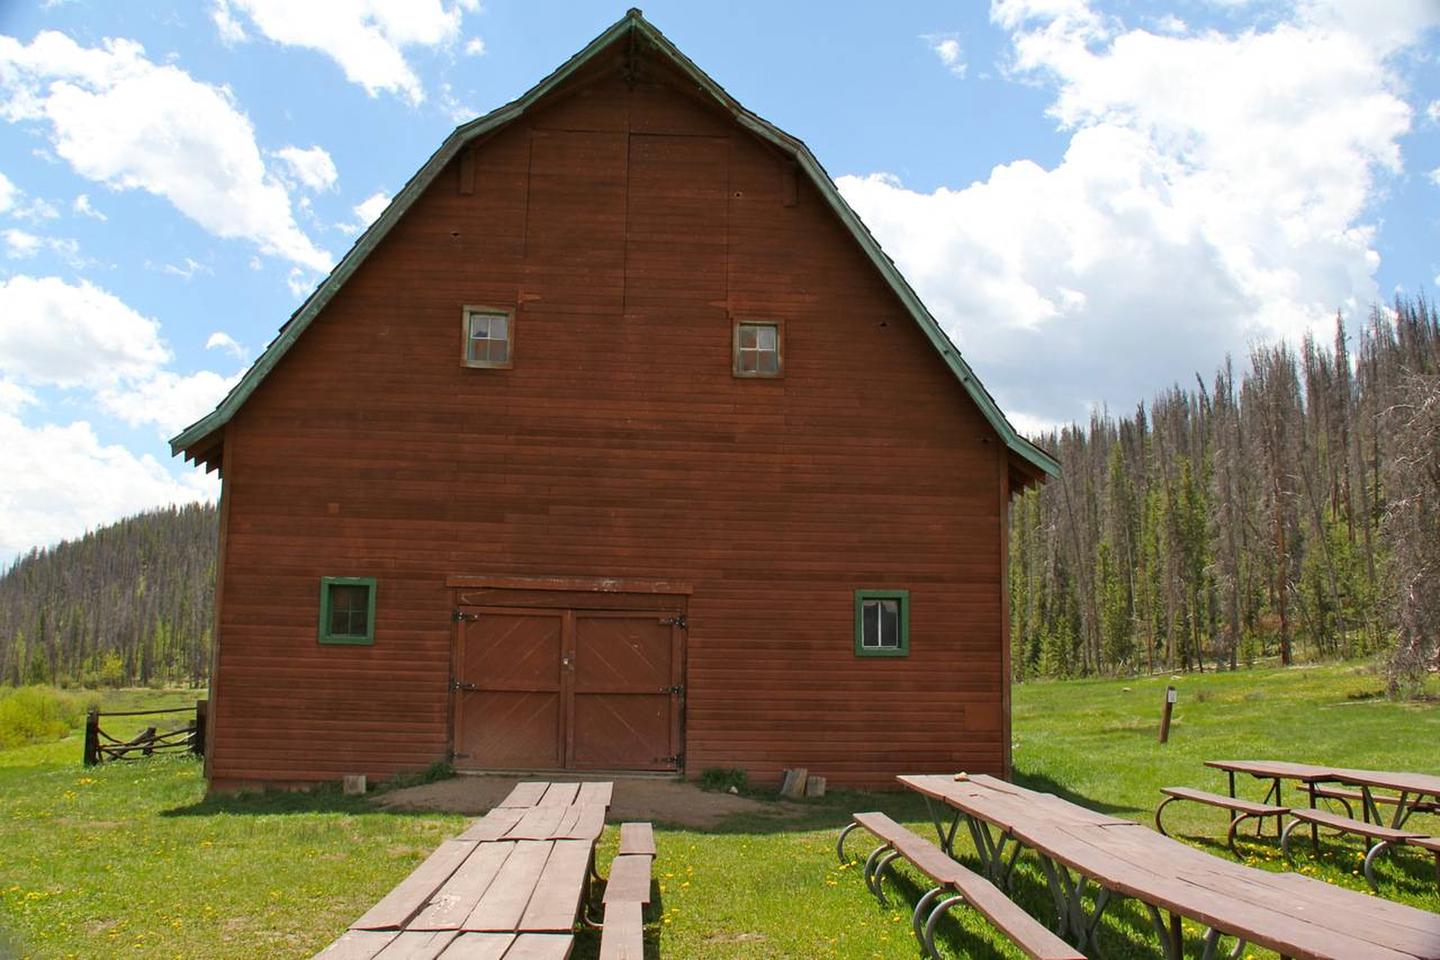 AA Barn with picnic tables